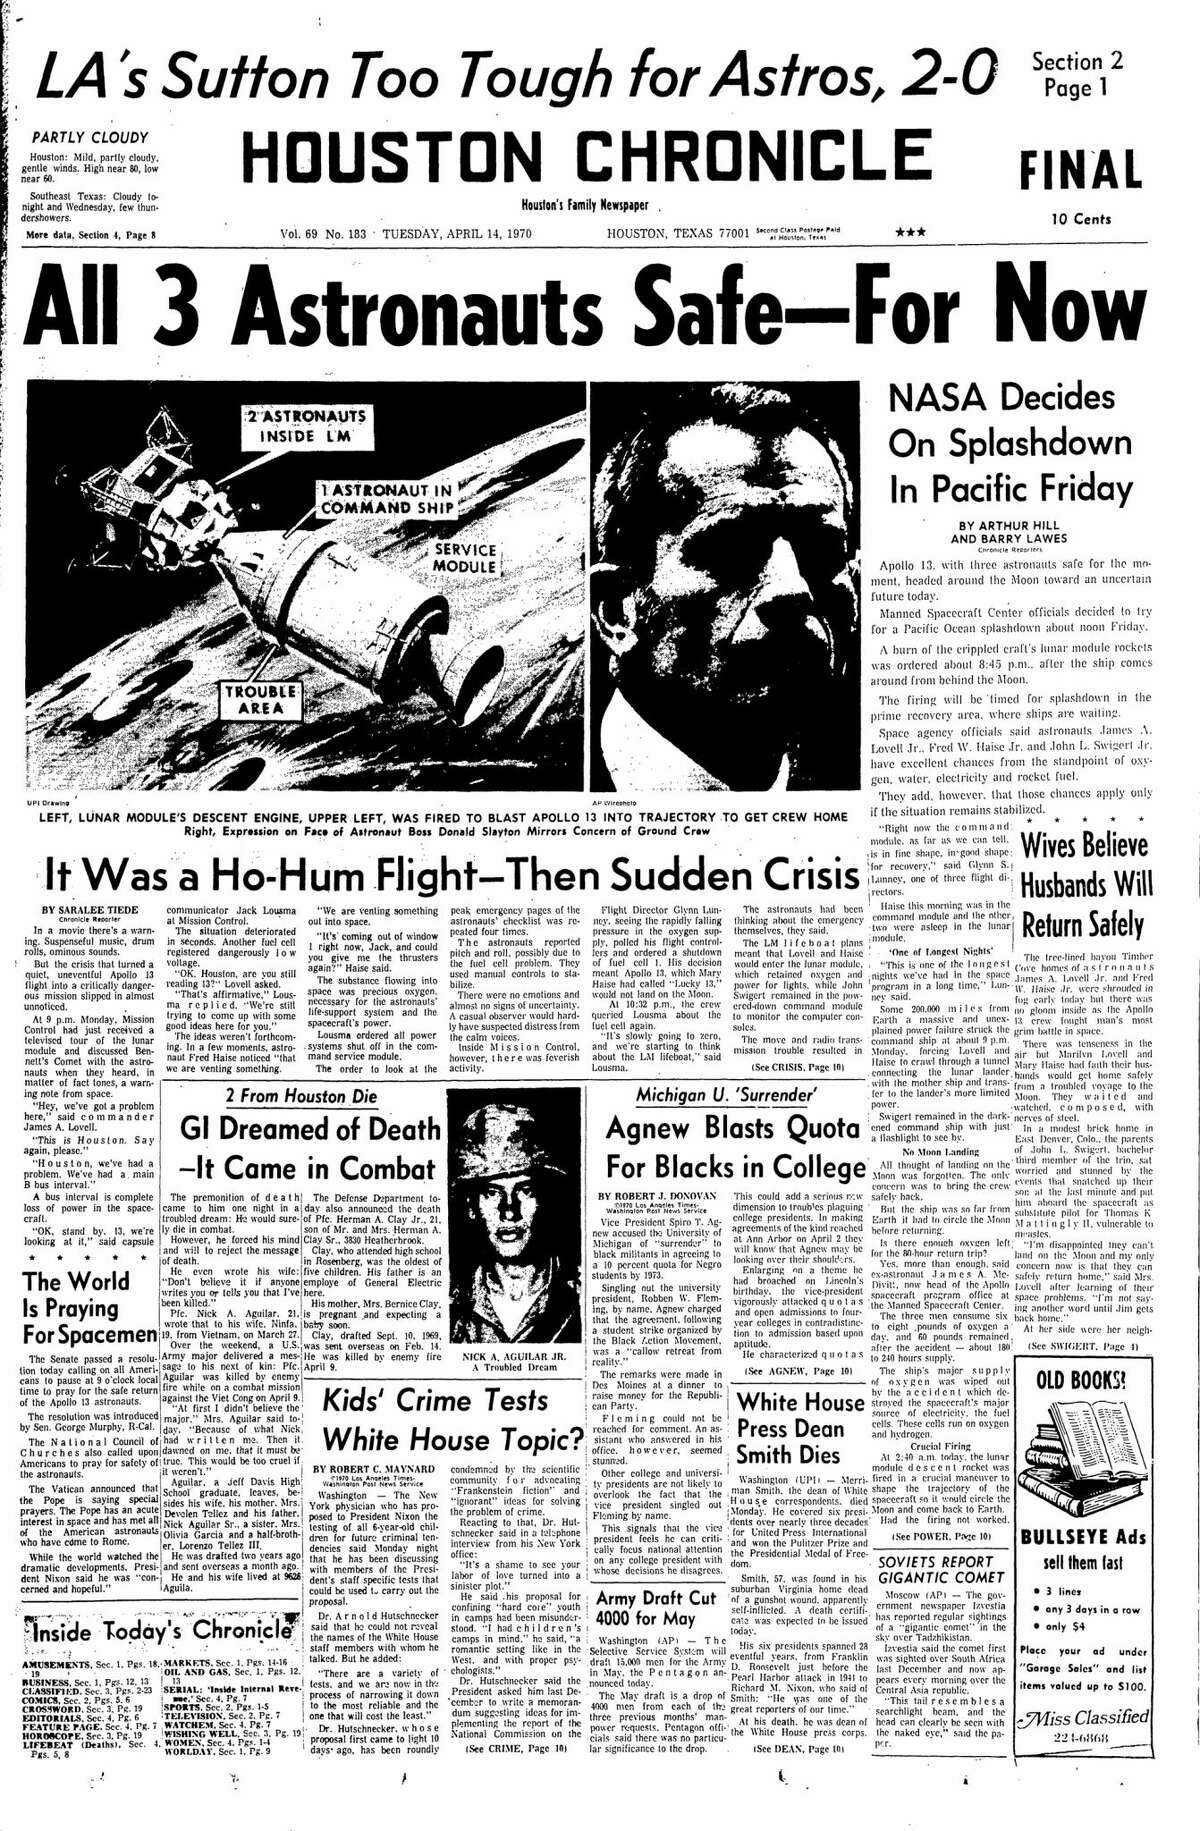 Houston Chronicle front page from April 14, 1970.